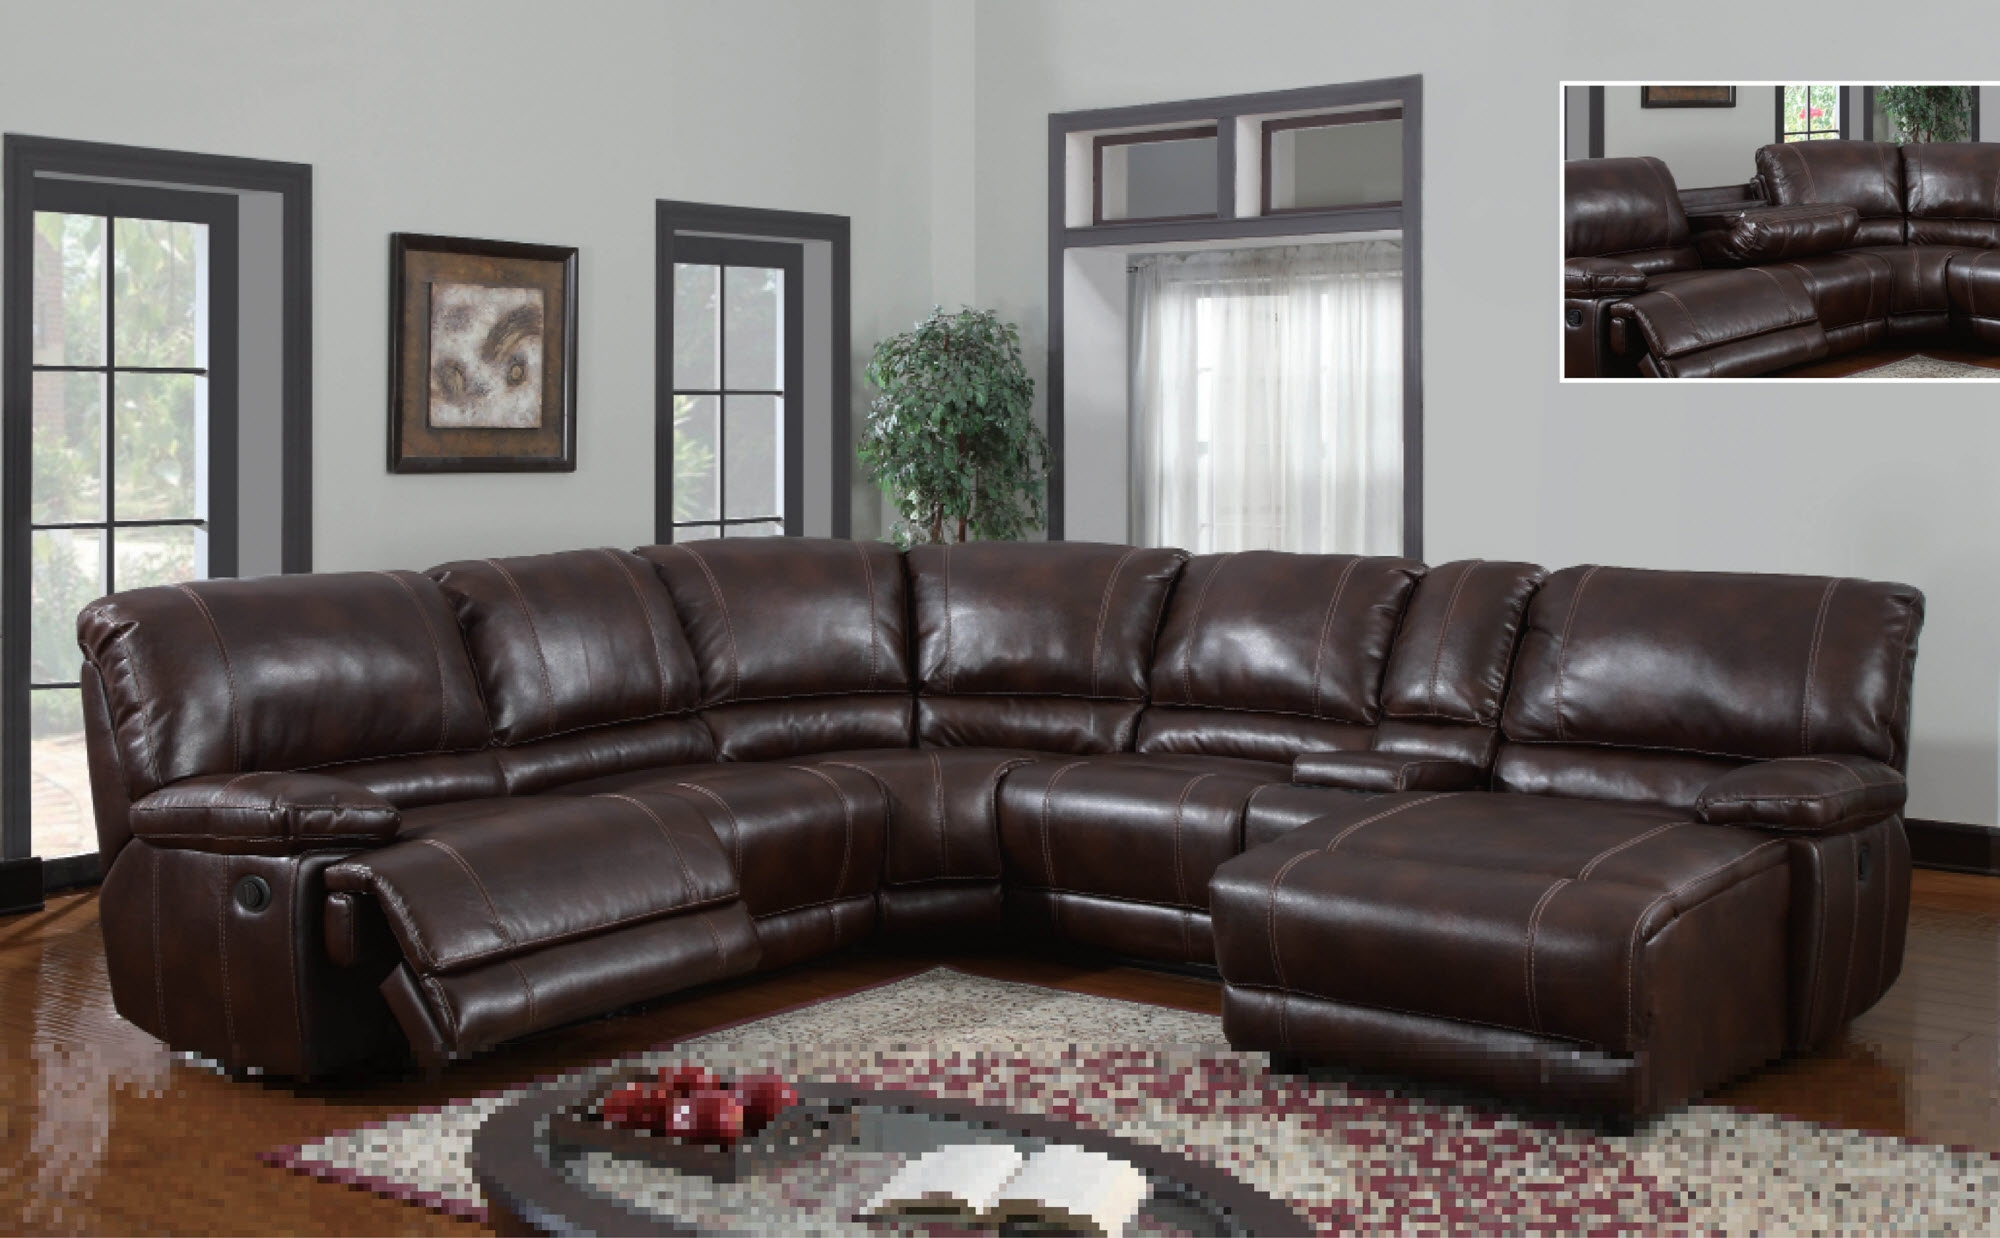 Elegant Sectional Sofas With Chaise And Recliner 36 For Your Small Throughout Elegant Sectional Sofas (#11 of 12)